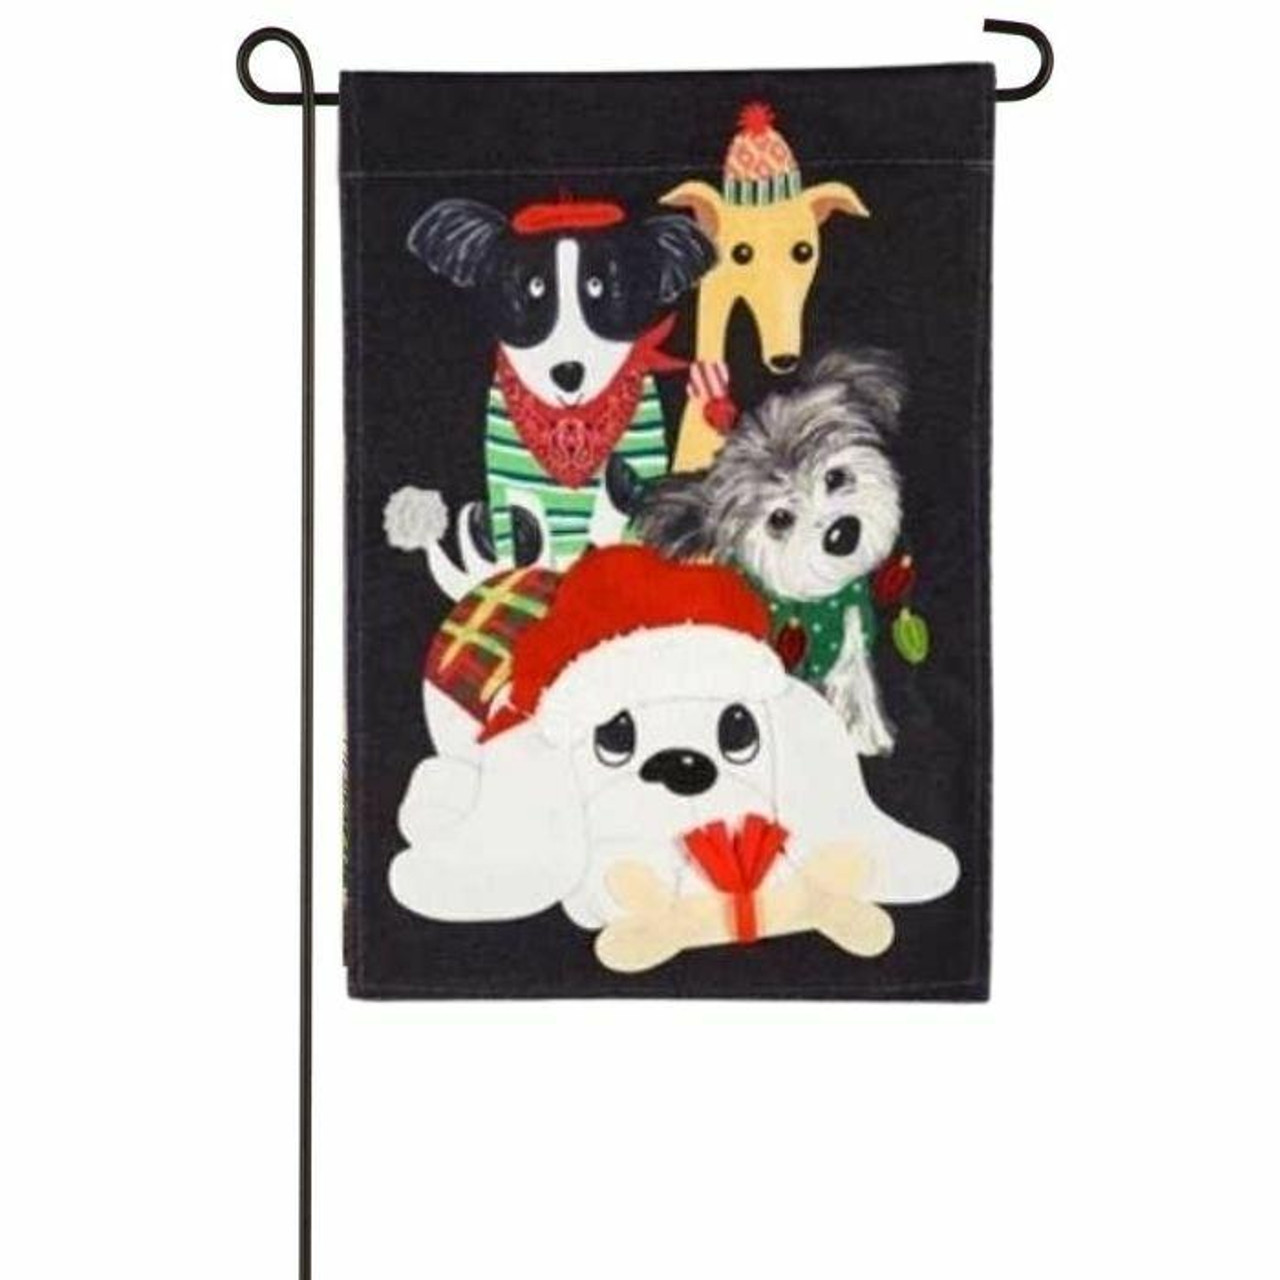 Illustrated Christmas house flag design featuring dogs dressed and decorated in Christmas Wear. White dog with red Christmas hat in center, holding an off-white bone with red Christmas bow on it. The White is also wearing a red, yellow, and green, plaid sweater. Behind the white dog is a fluffy dog gray and white dog in green sweater, along with a black and white dog in green sweater and red bandana, and a tan dog with a red and white striped scarf. The background of the image is black.